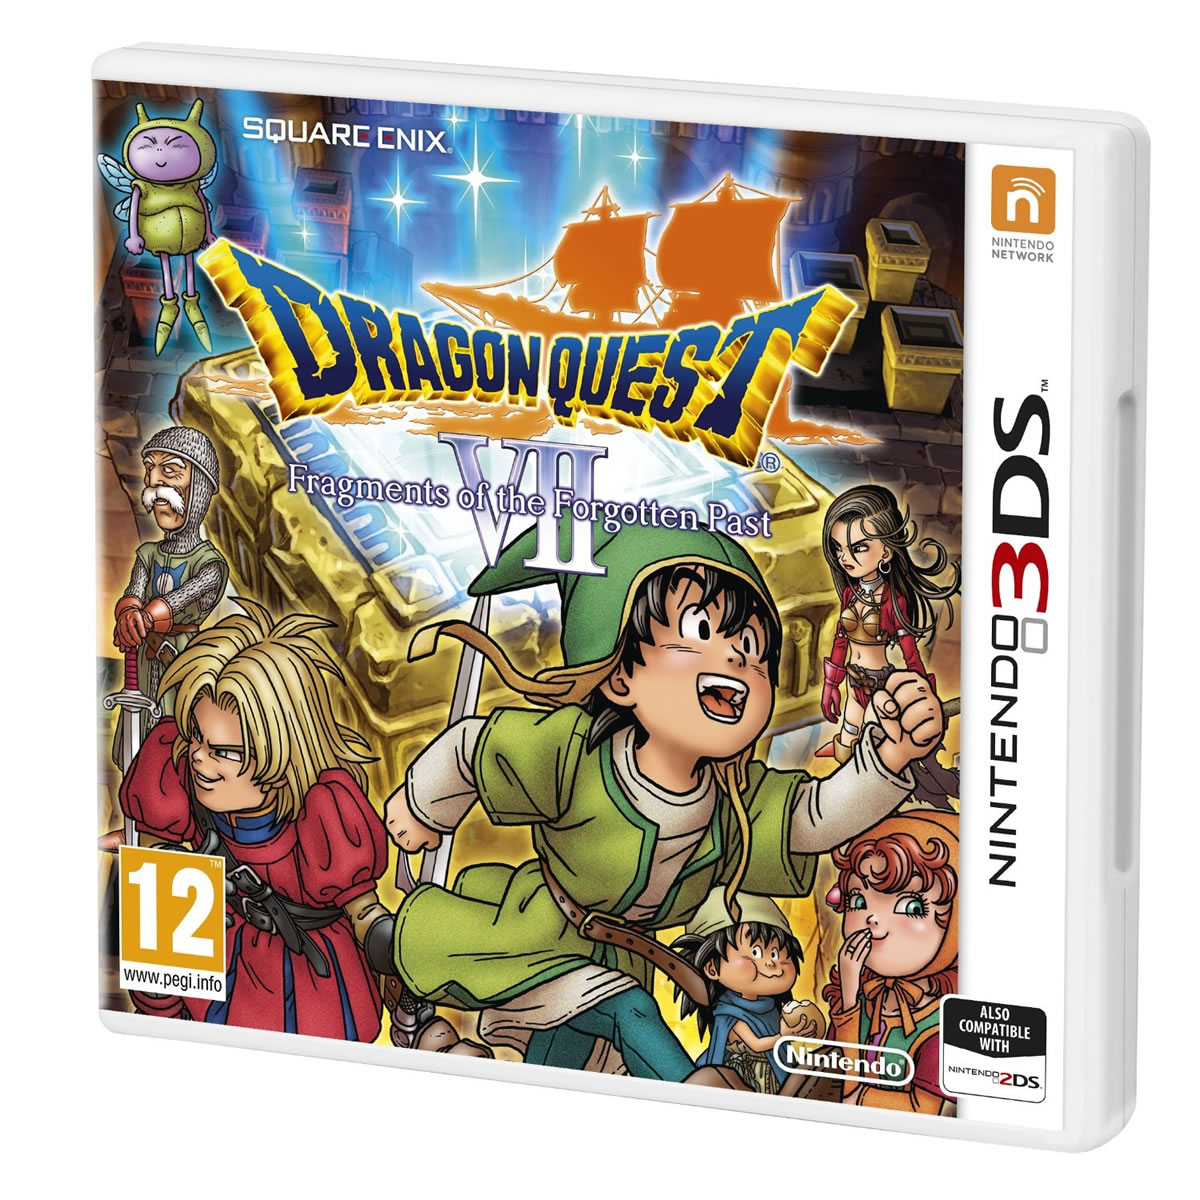 DRAGON QUEST VII: FRAGMENTS OF THE FORGOTTEN PAST (3DS, 2DS)